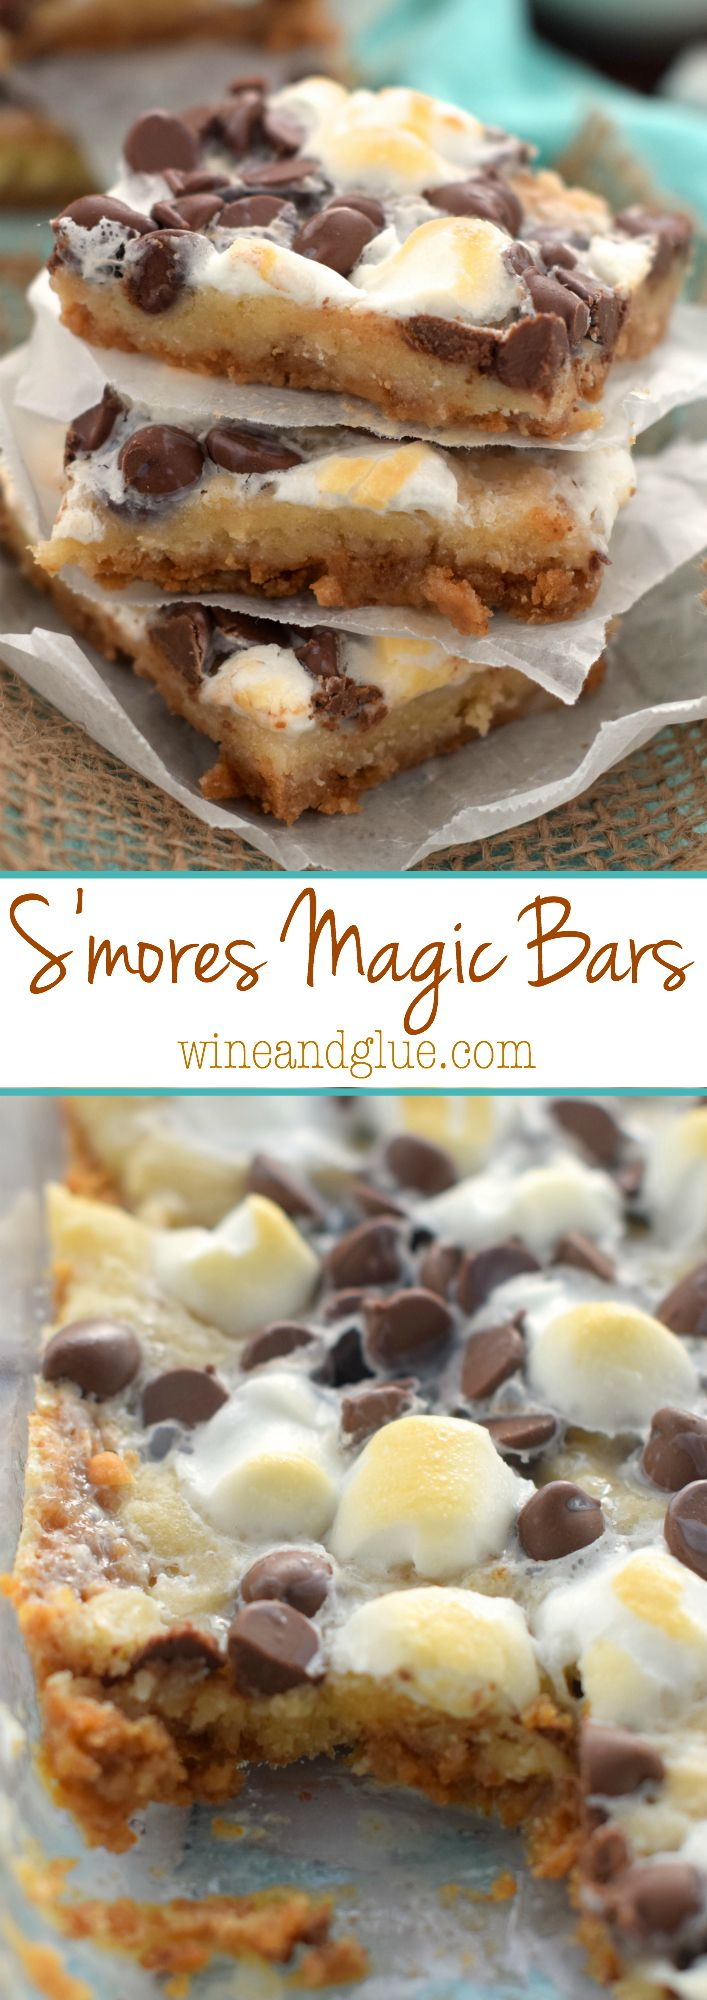 S'mores Magic bars look more magical than their name. I need these right now.